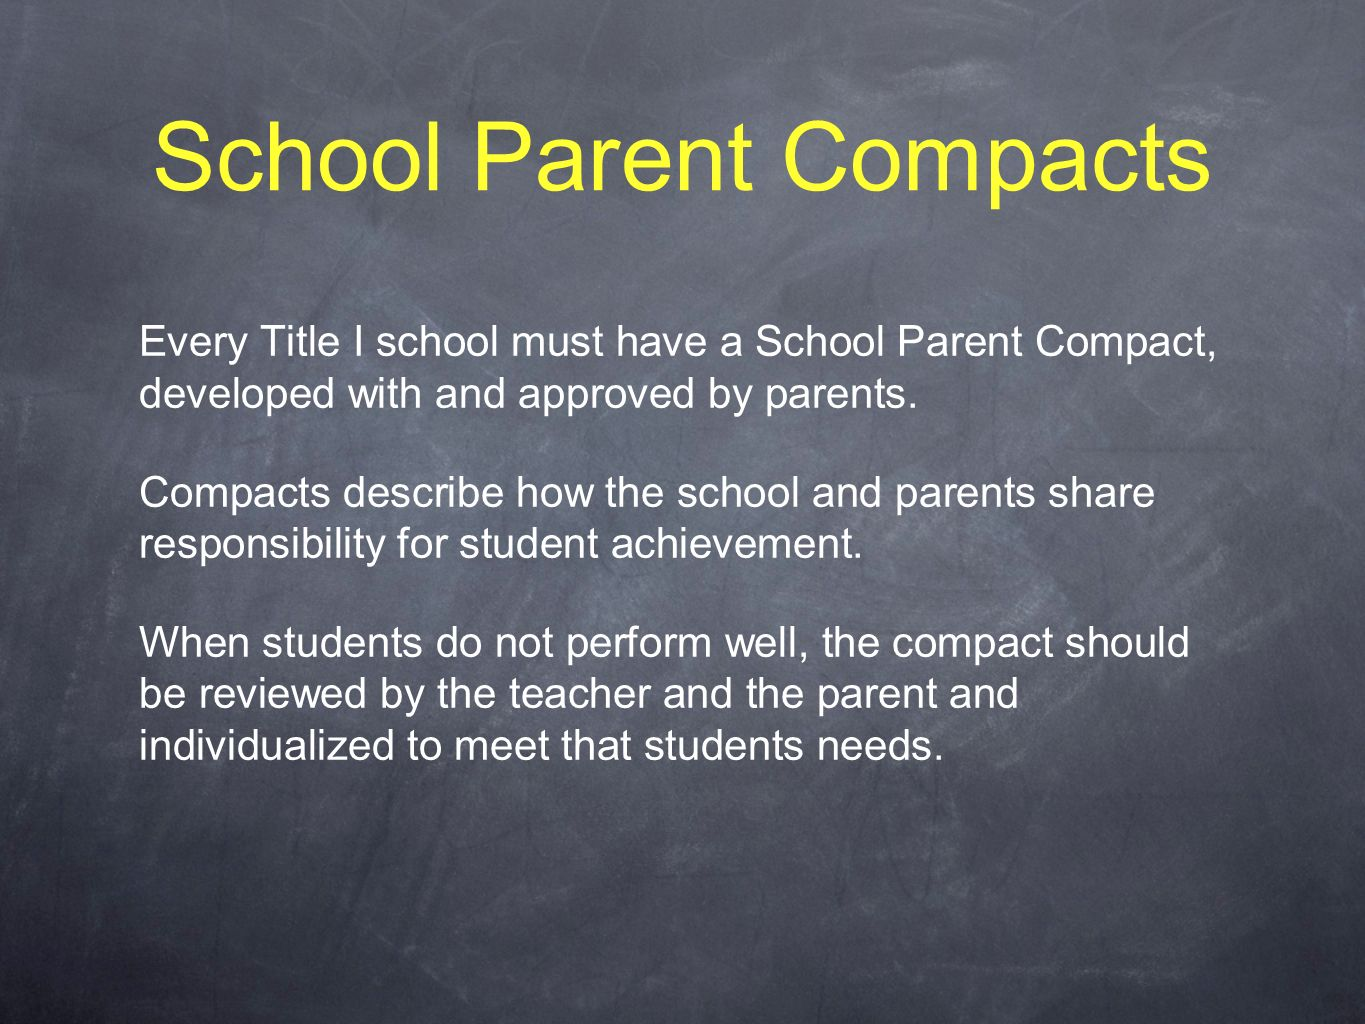 School Parent Compacts Every Title I school must have a School Parent Compact, developed with and approved by parents.